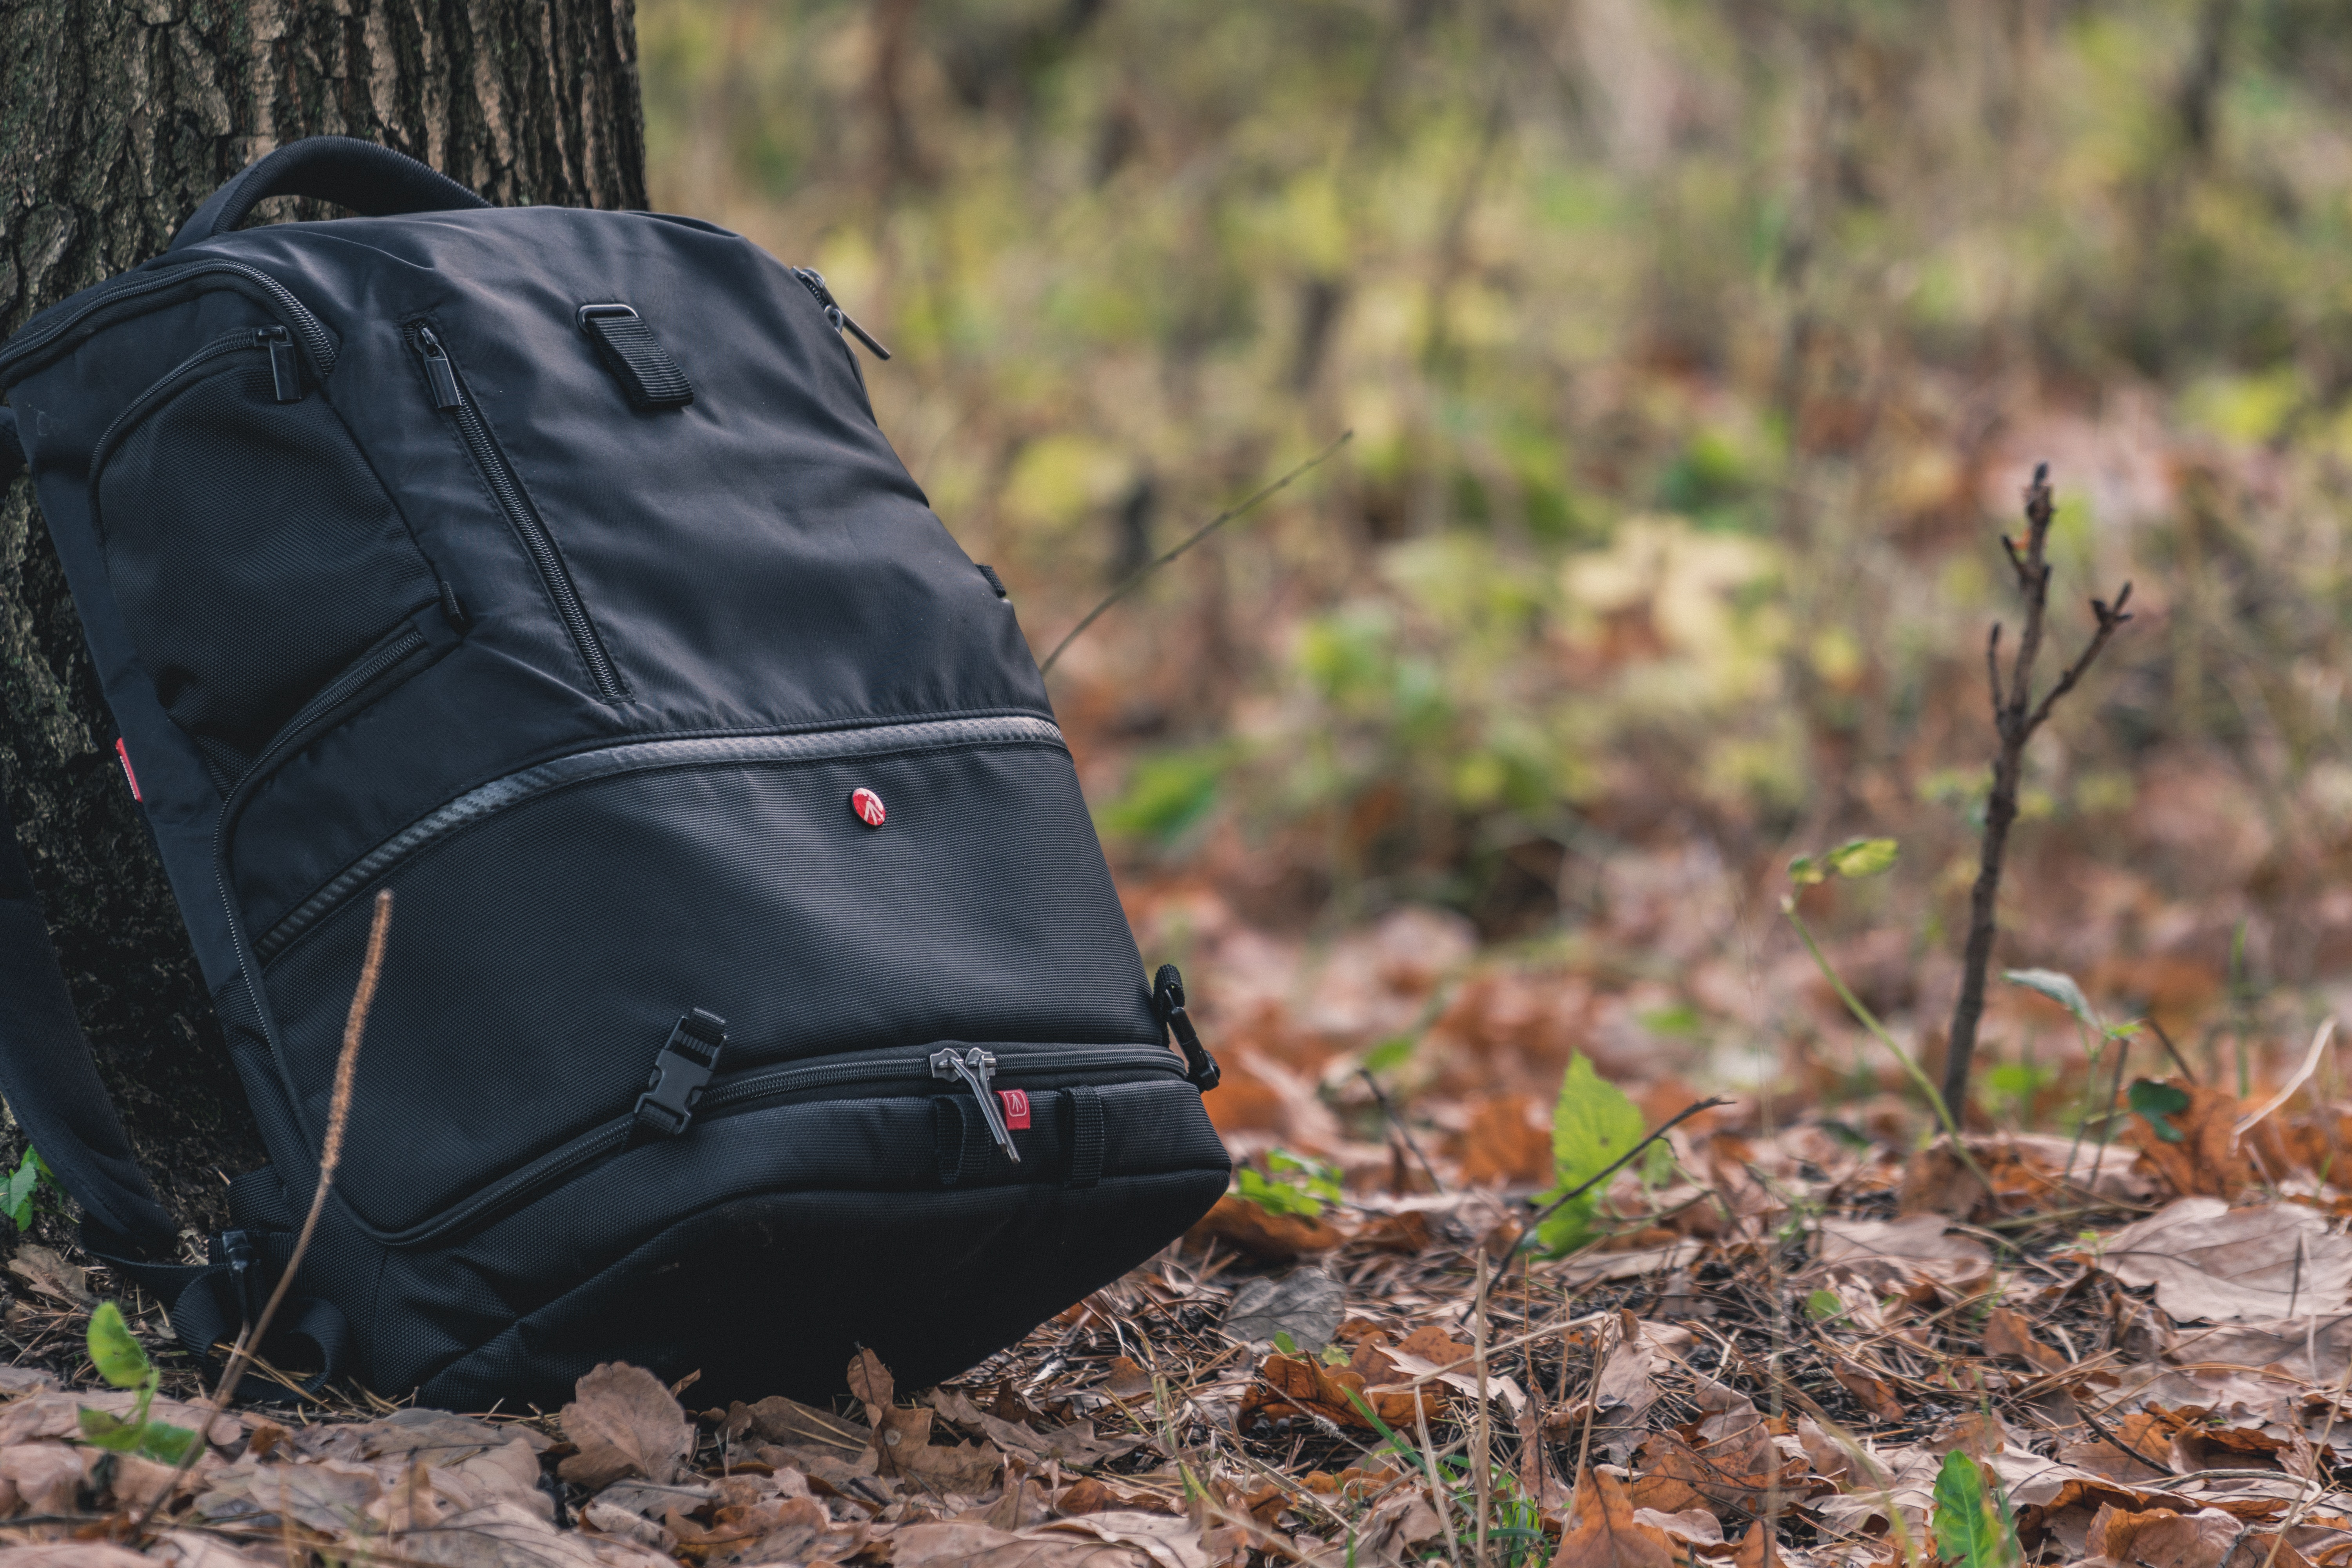 Protection Worth The Price? A Review Of The Ultra-Secure Pacsafe Citysafe CS300 Backpack